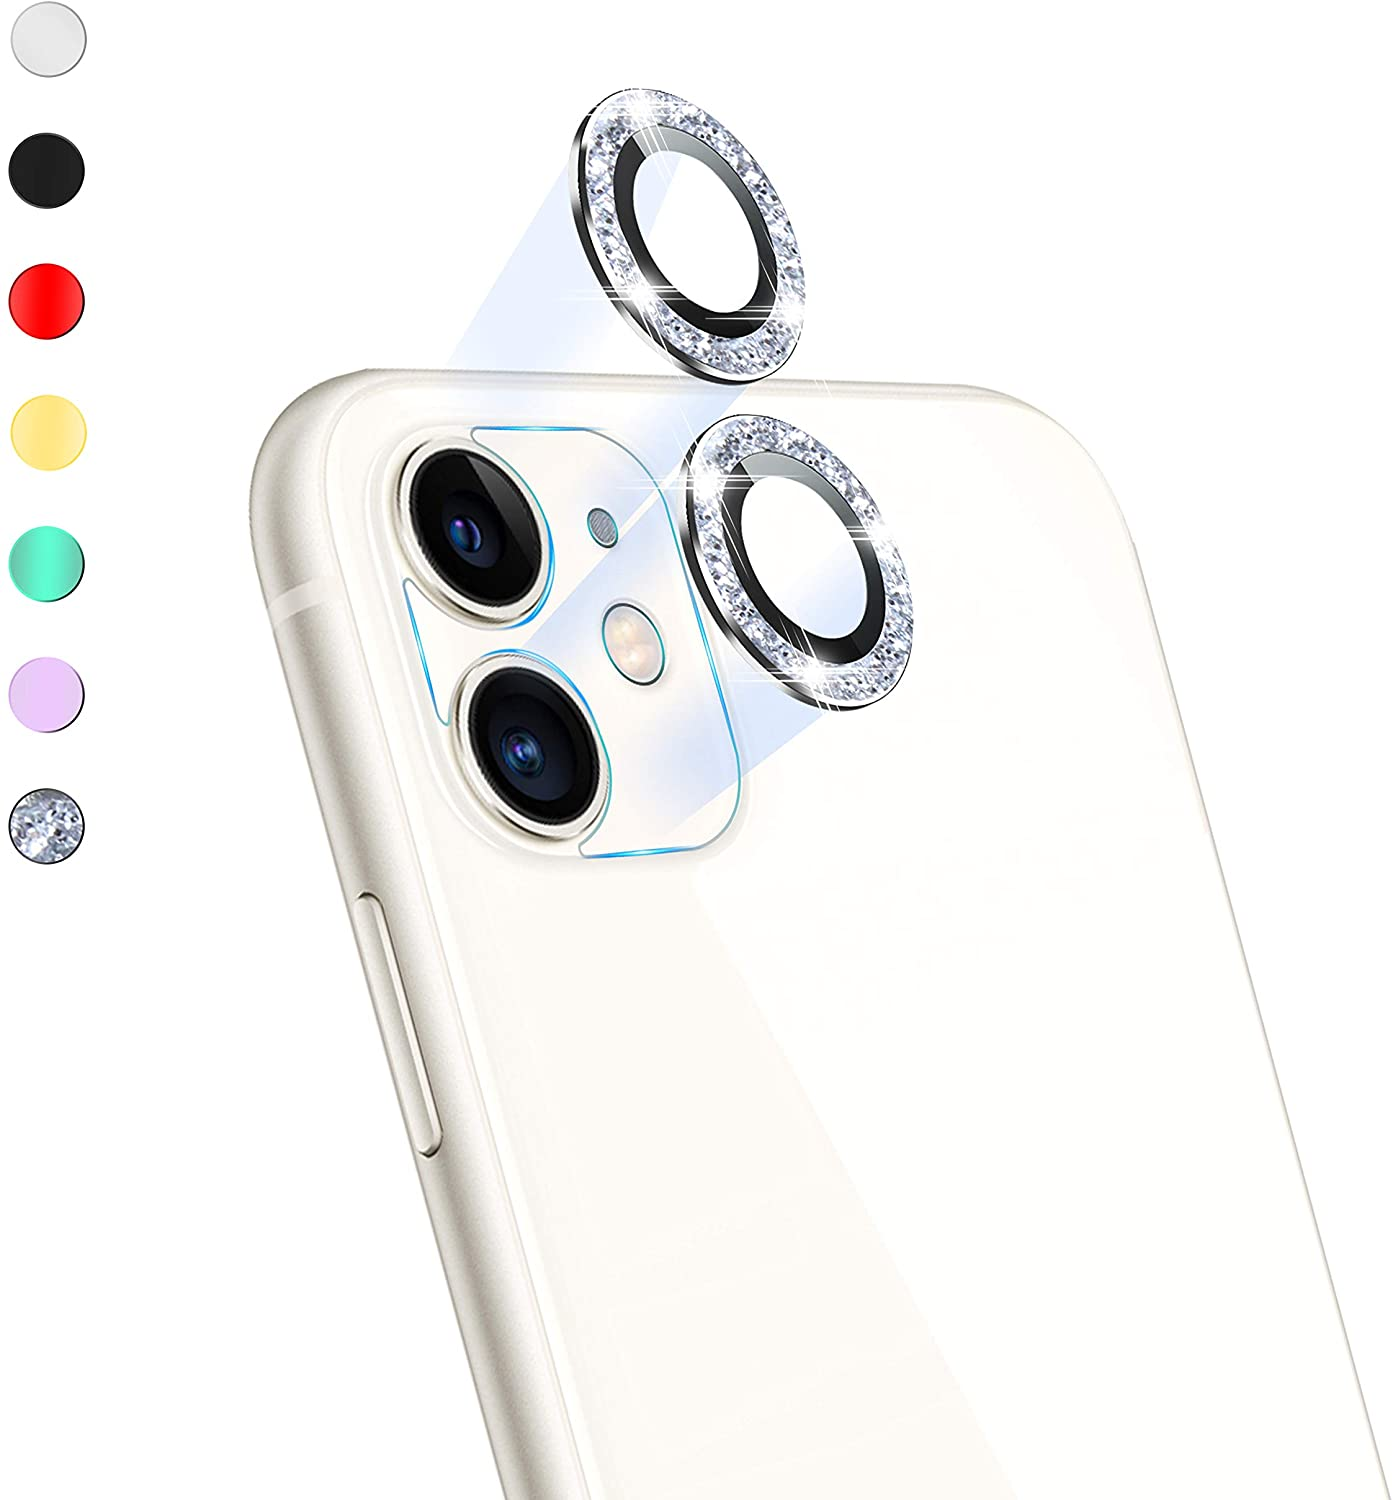 Best iPhone 11 camera protector